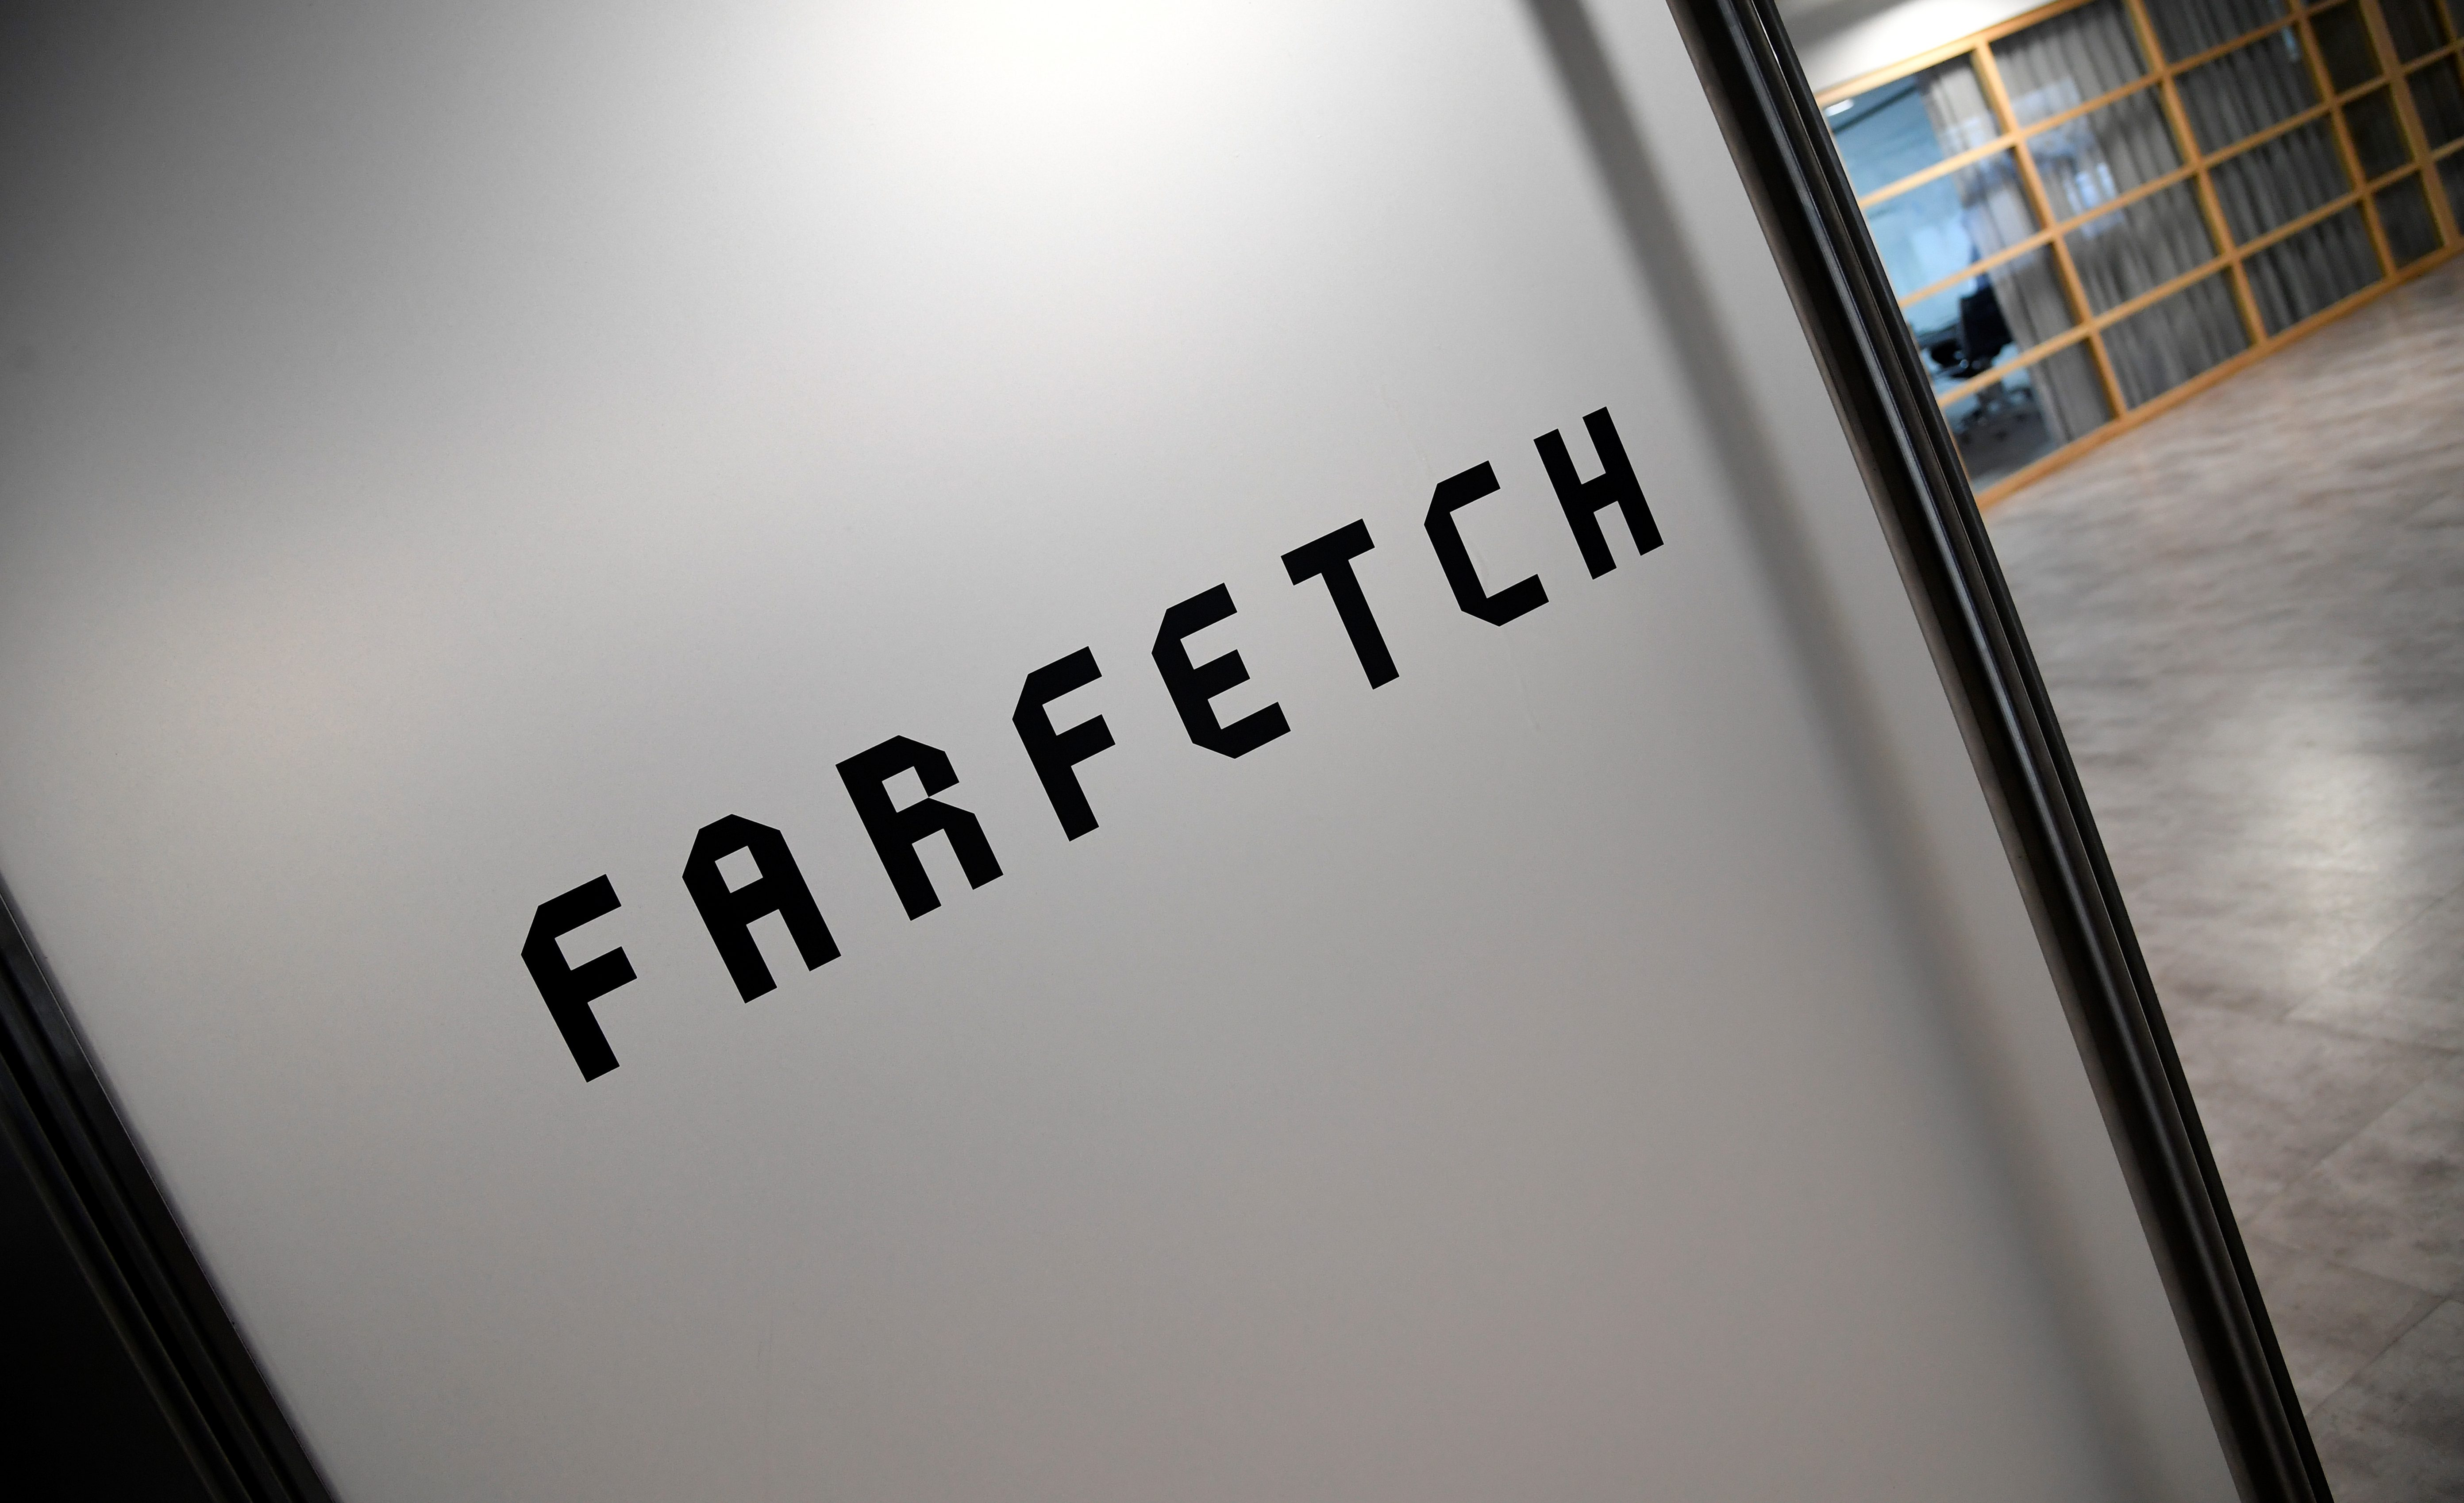 Branding for online fashion house Farfetch is seen at the company headquarters in London, Britain January 31, 2018. REUTERS/Toby Melville - RC1E8E0D9F80